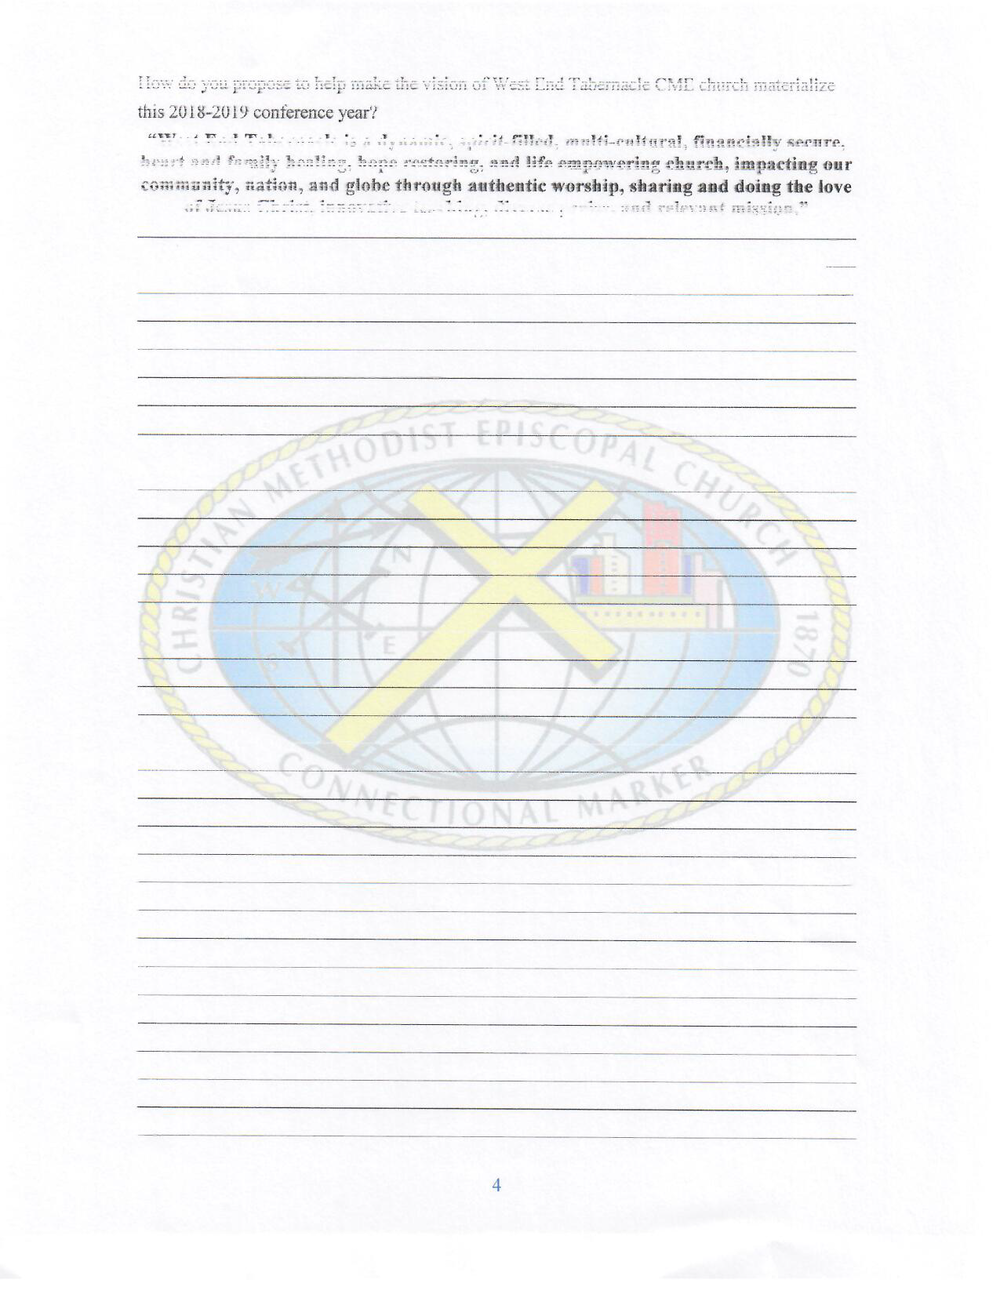 Kitchen Steward Planning Report_Page_4.png